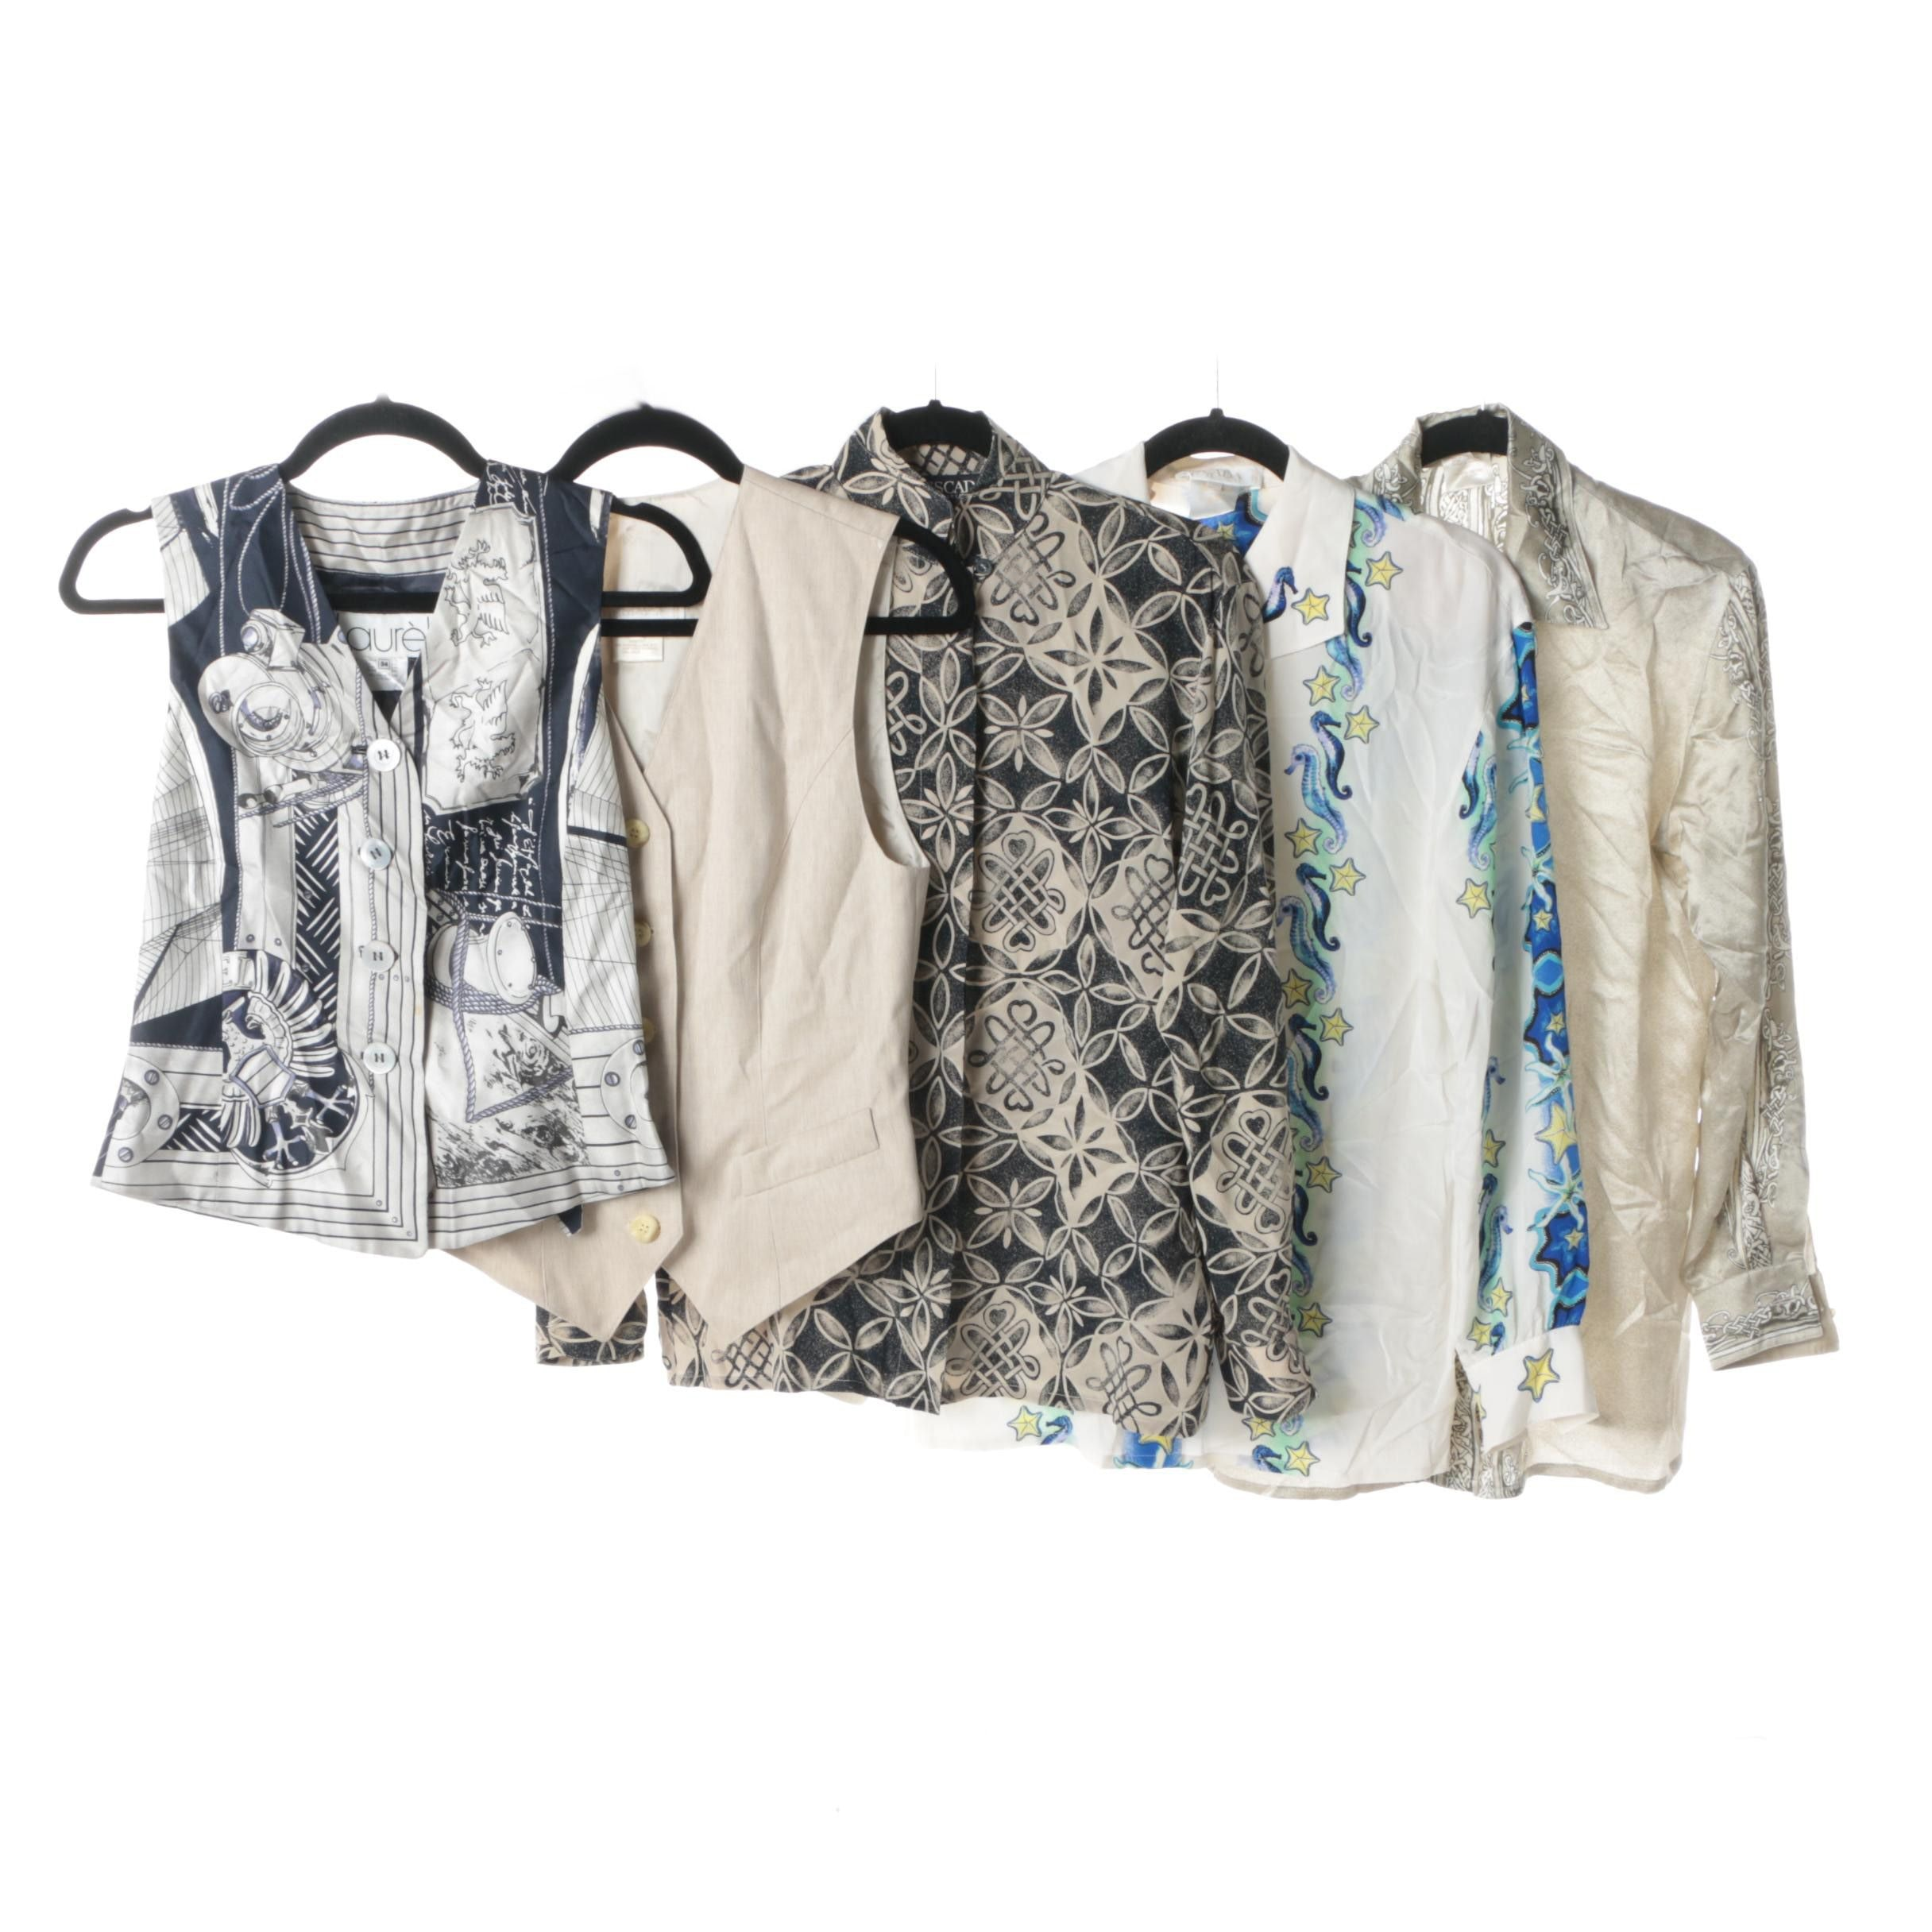 Women's Escada and Laurèl Silk and Wool Blouses and Vests